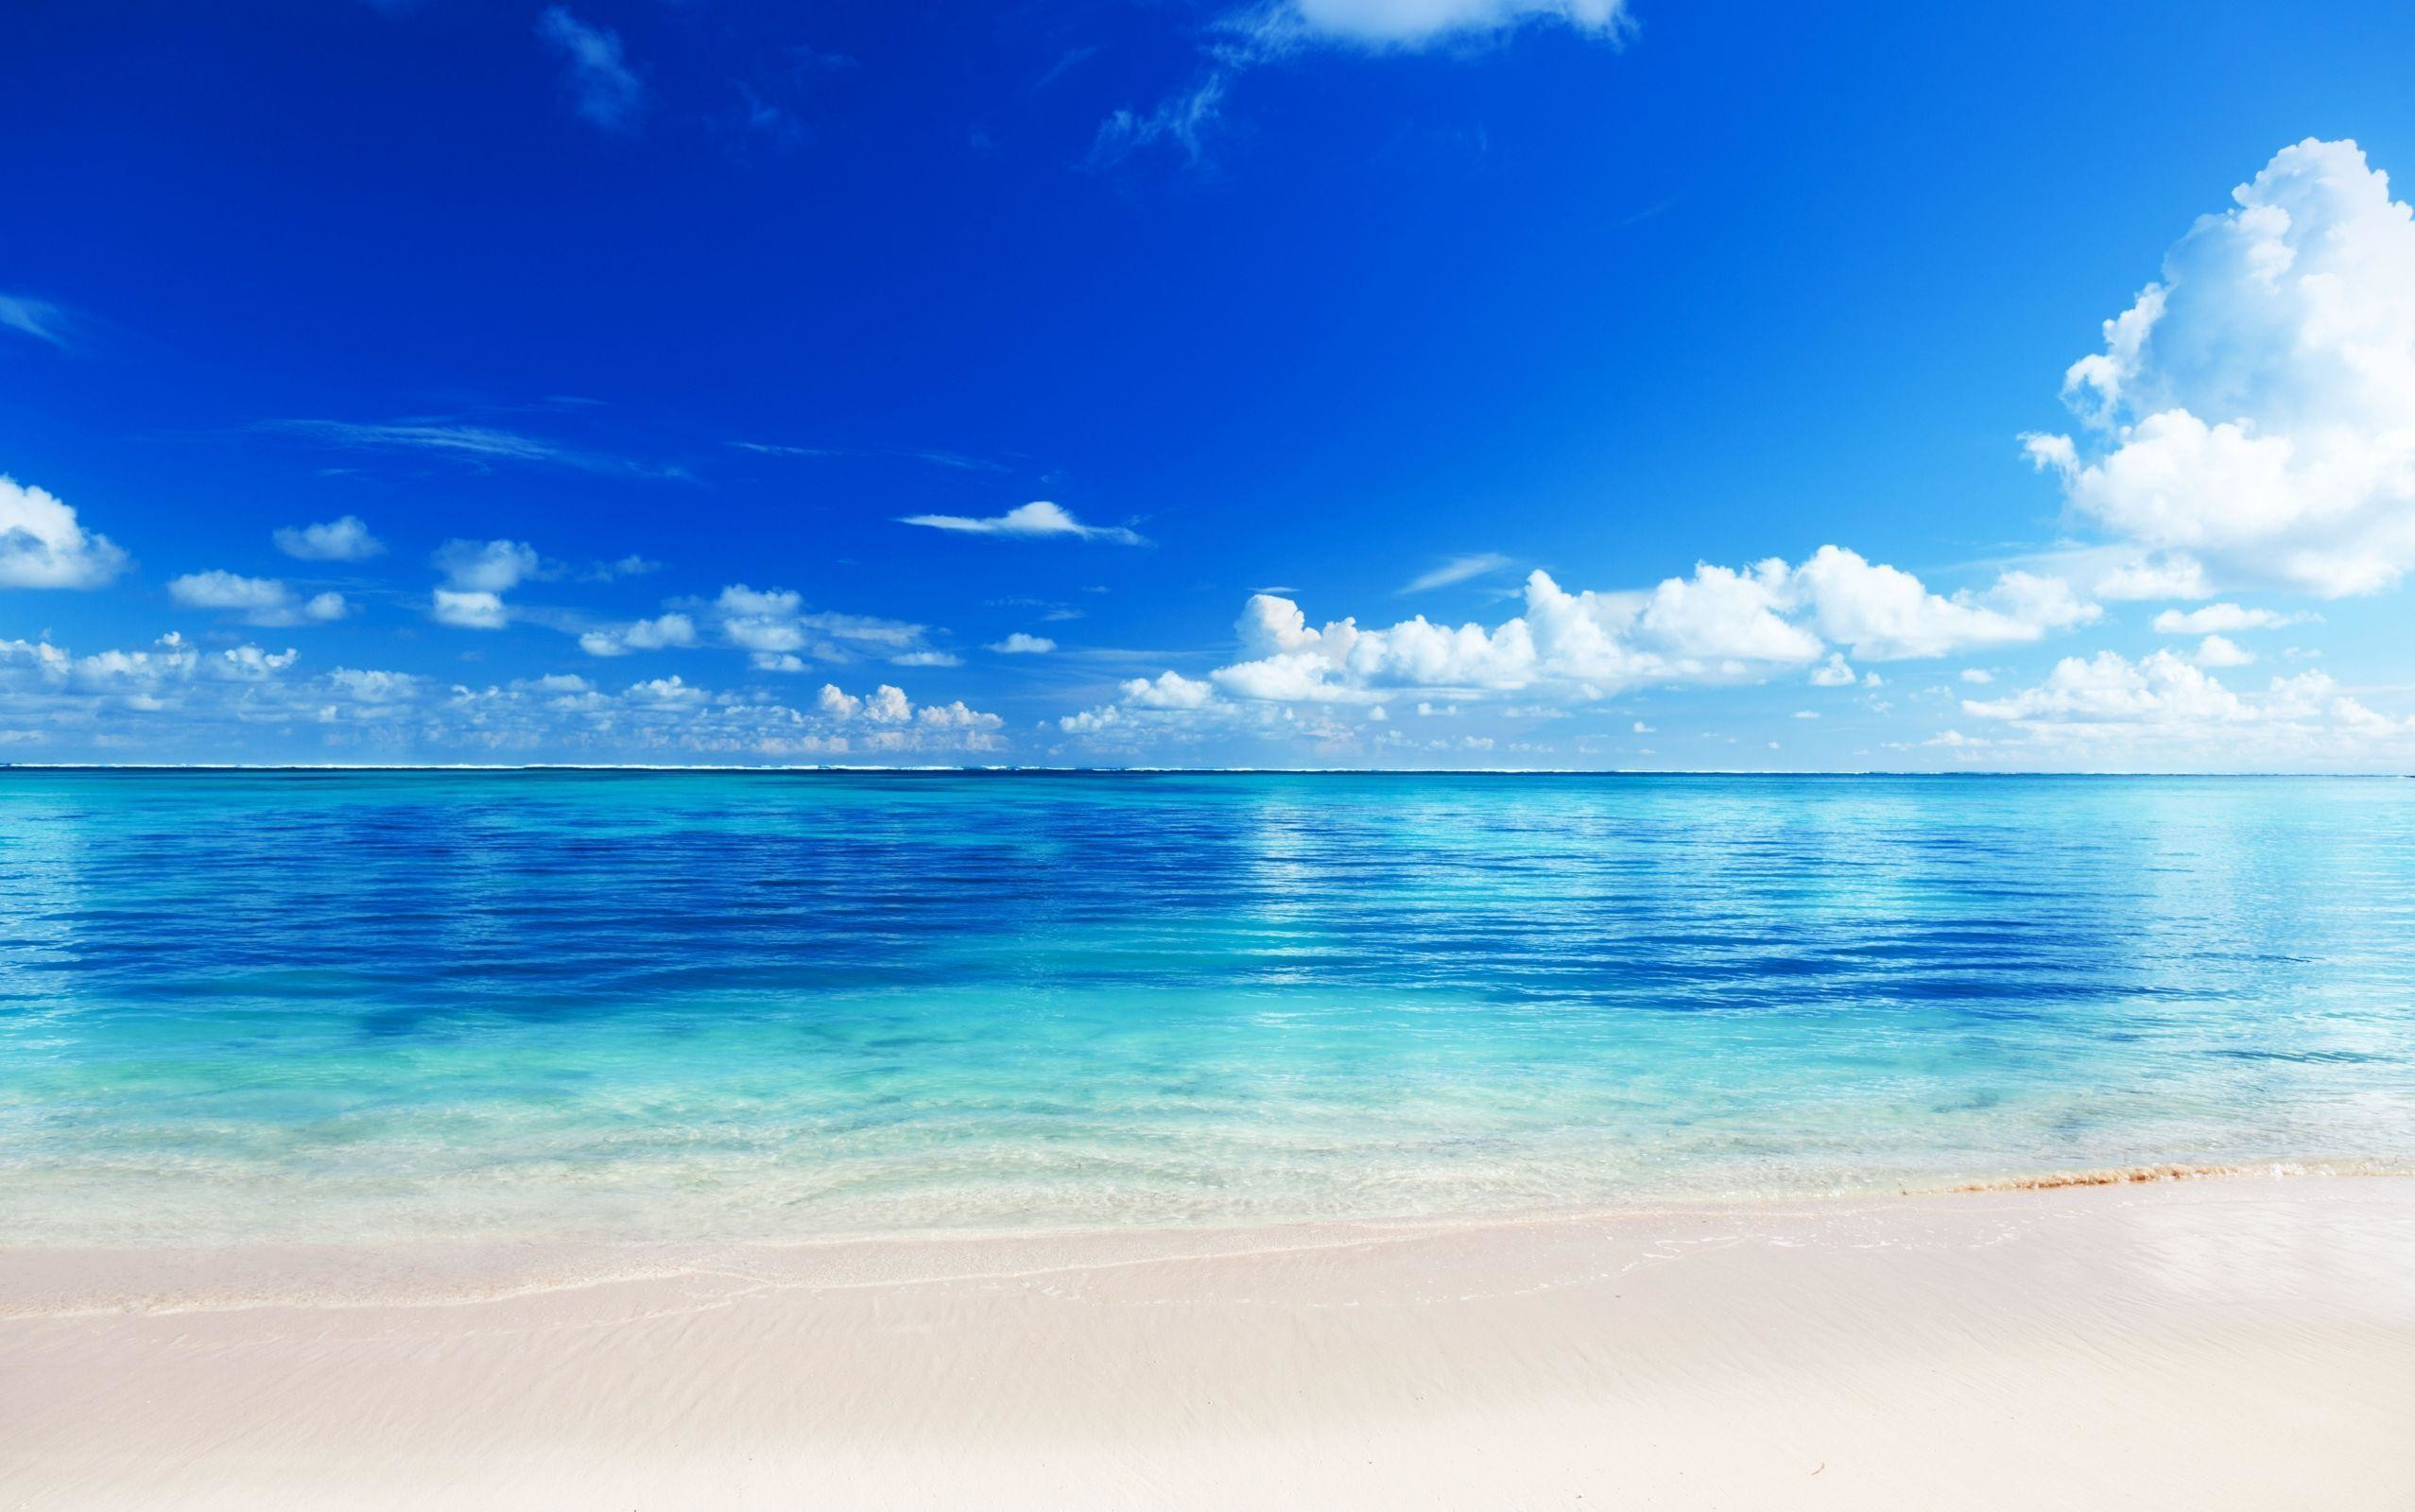 2555x1600 Free Beach Backgrounds Image - Wallpaper Cave